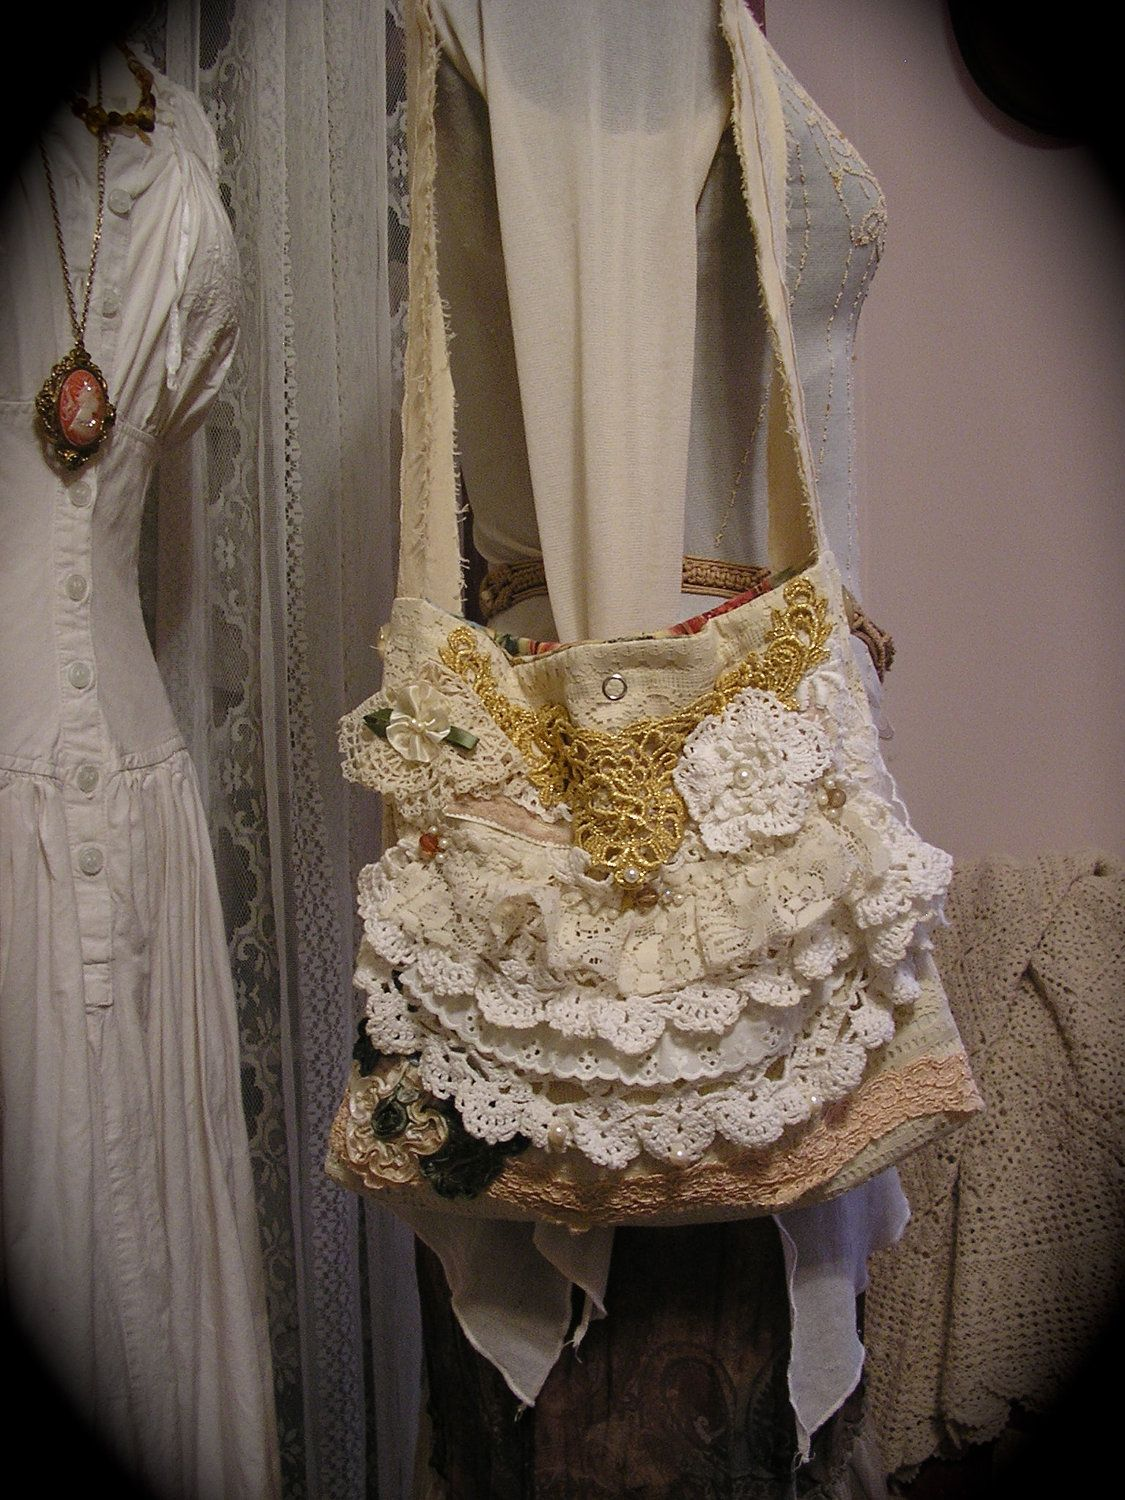 White lace texture bridal layered ruffled - Ruffled Lace Bag Layered Crocheted Doilies Laces Pearls Small Size Lightweight Bag Handmade Cottage Shabby Ooak Victorian Shoulder Bag